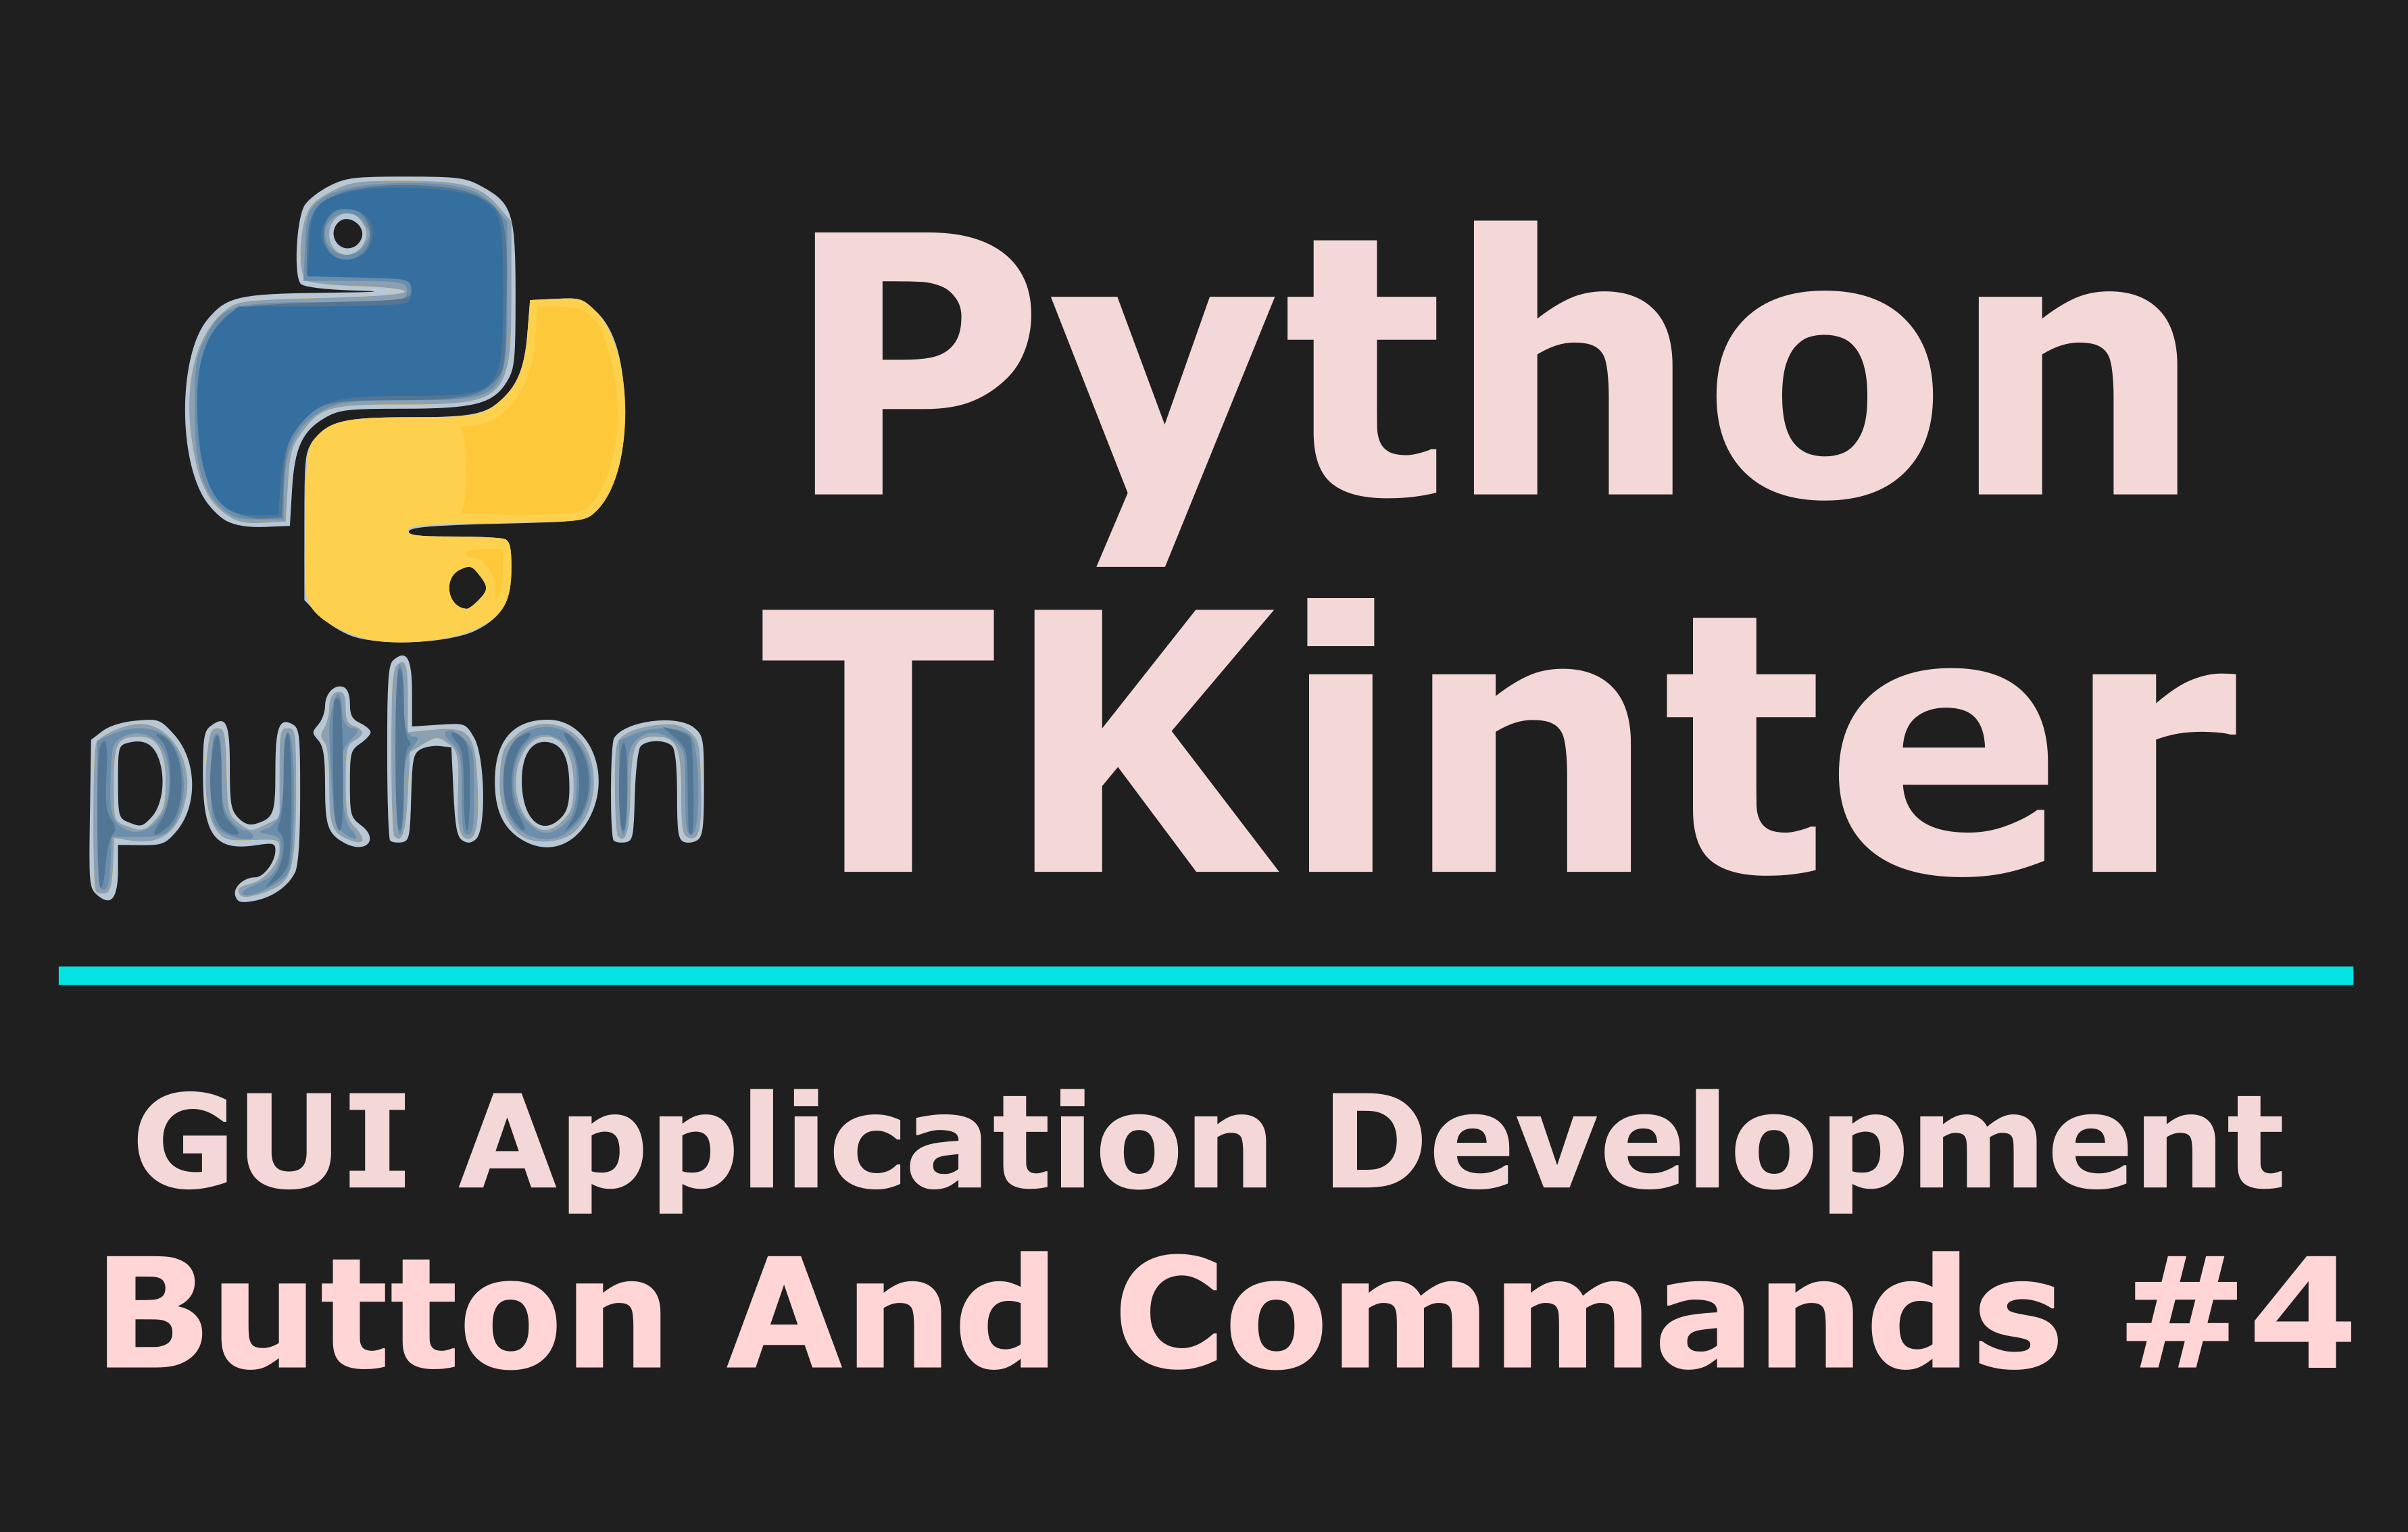 Python TKinter GUI Creating Buttons - Code Loop